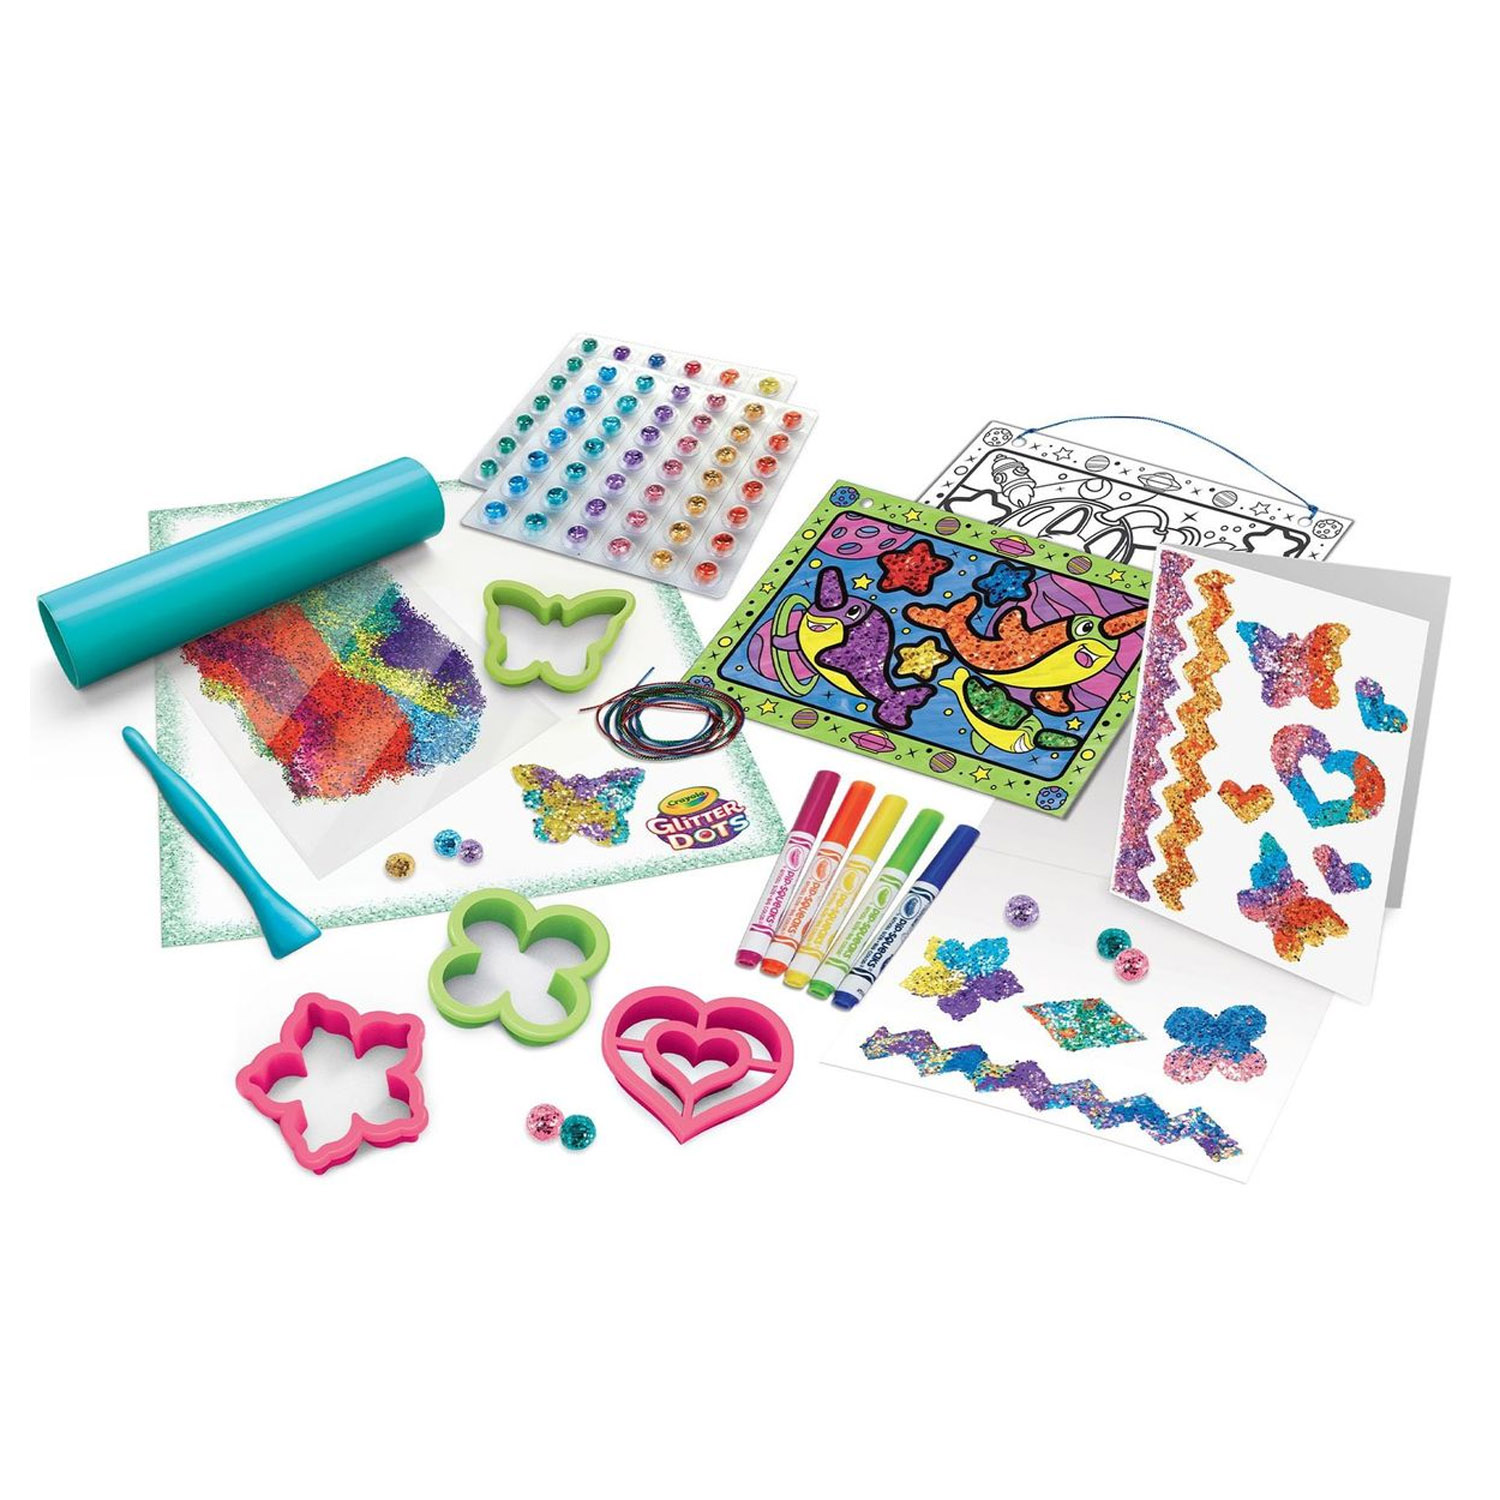 Crayola-Kids-Mouldable-Glitter-Dots-Assortments-OR-Sparkle-Station-Creative-Art thumbnail 4